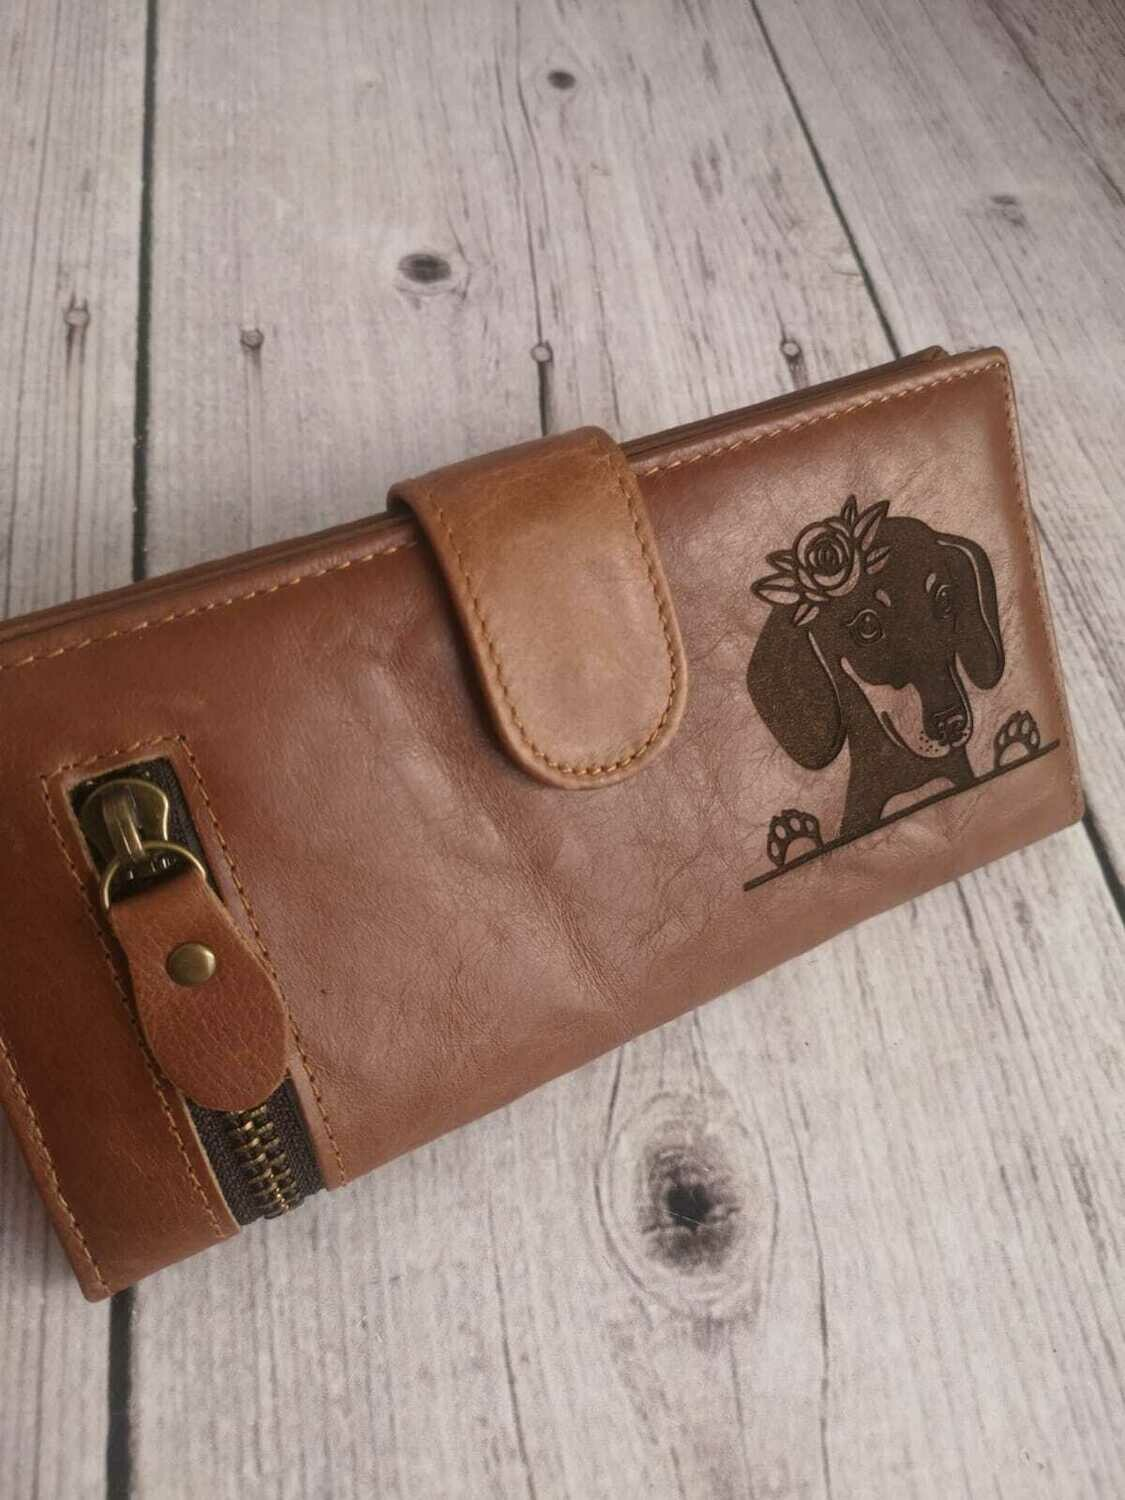 Exclusive Long Dog Wallet - Dachshund with Flowers